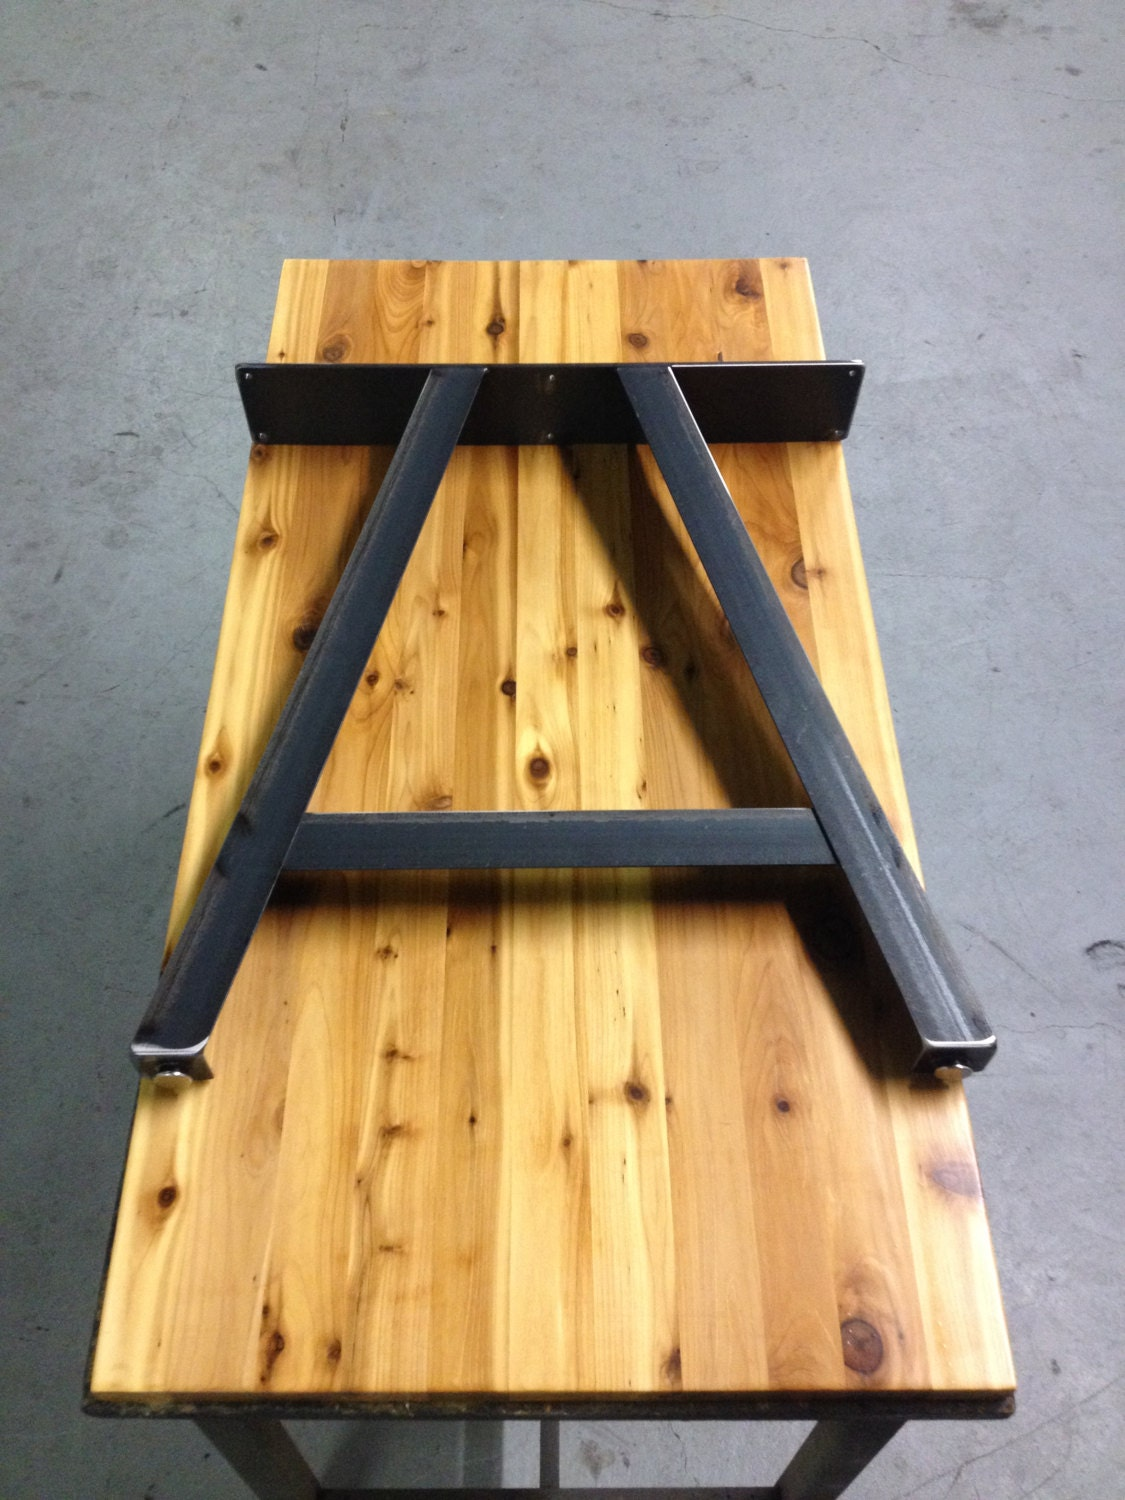 A Frame Table Legs Adjustable Leveling Feet By Thelegshoppe